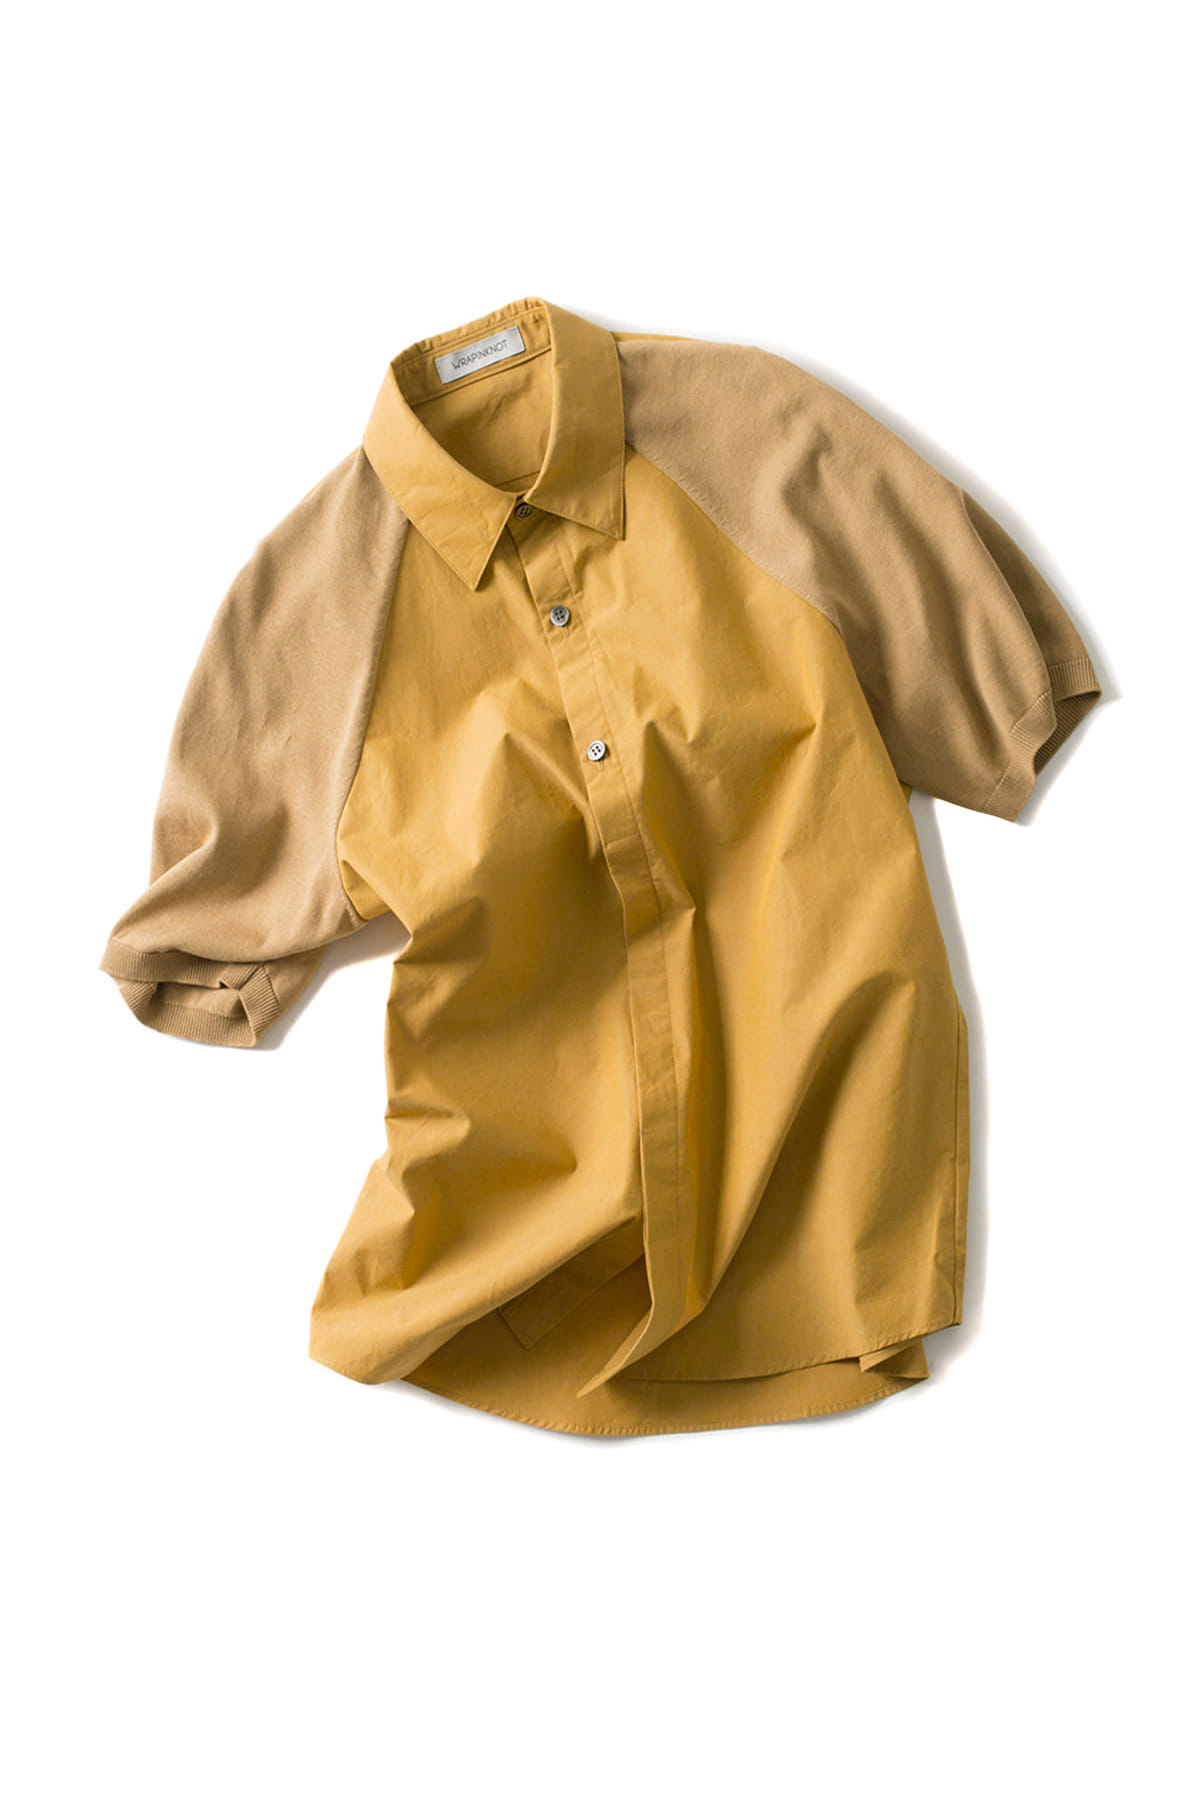 WRAPINKNOT : Combi Split Raglan H/S Shirt (Yellow)